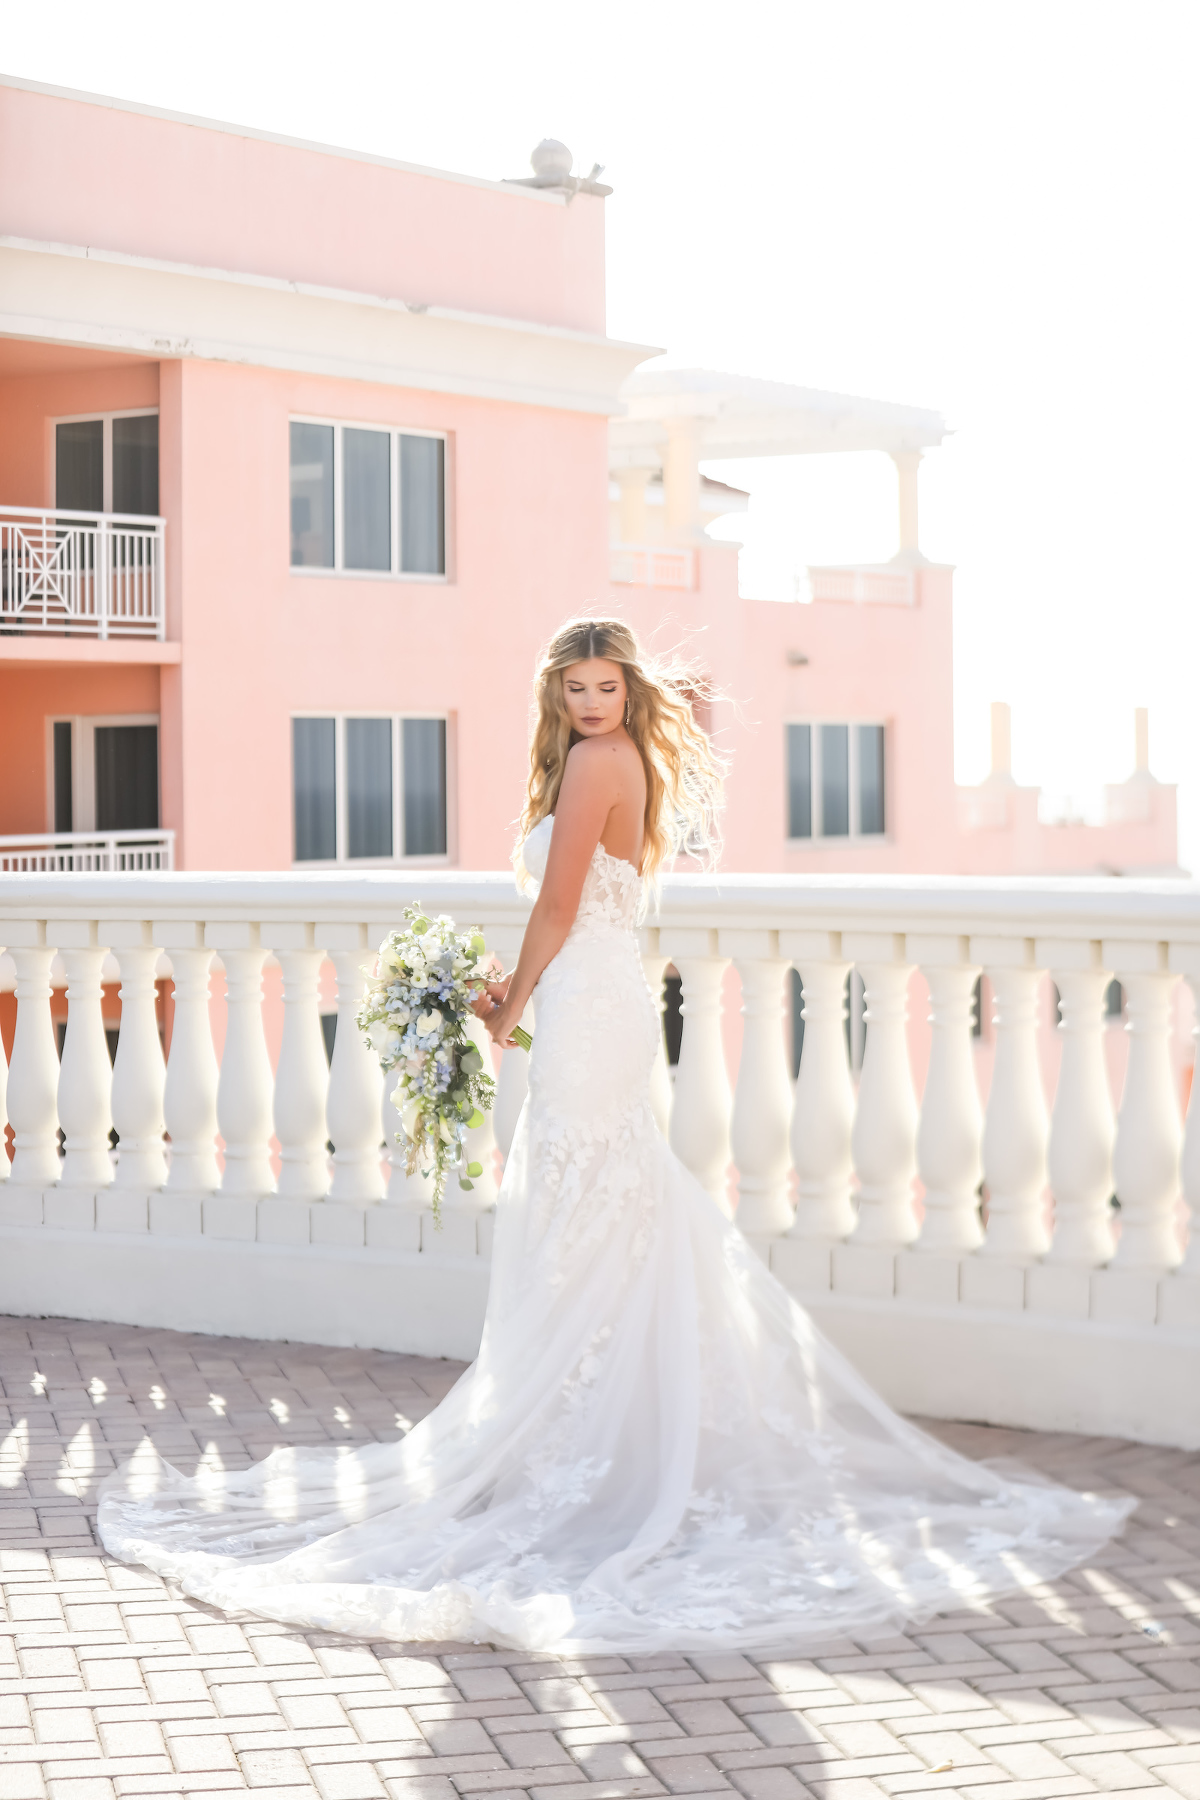 Outdoor Bridal Portrait at Clearwater Wedding Venue Hyatt Regency Clearwater Beach | Strapless Lace Sweetheart Mermaid Wedding Dress Bridal Gown | Lifelong Photography Studio